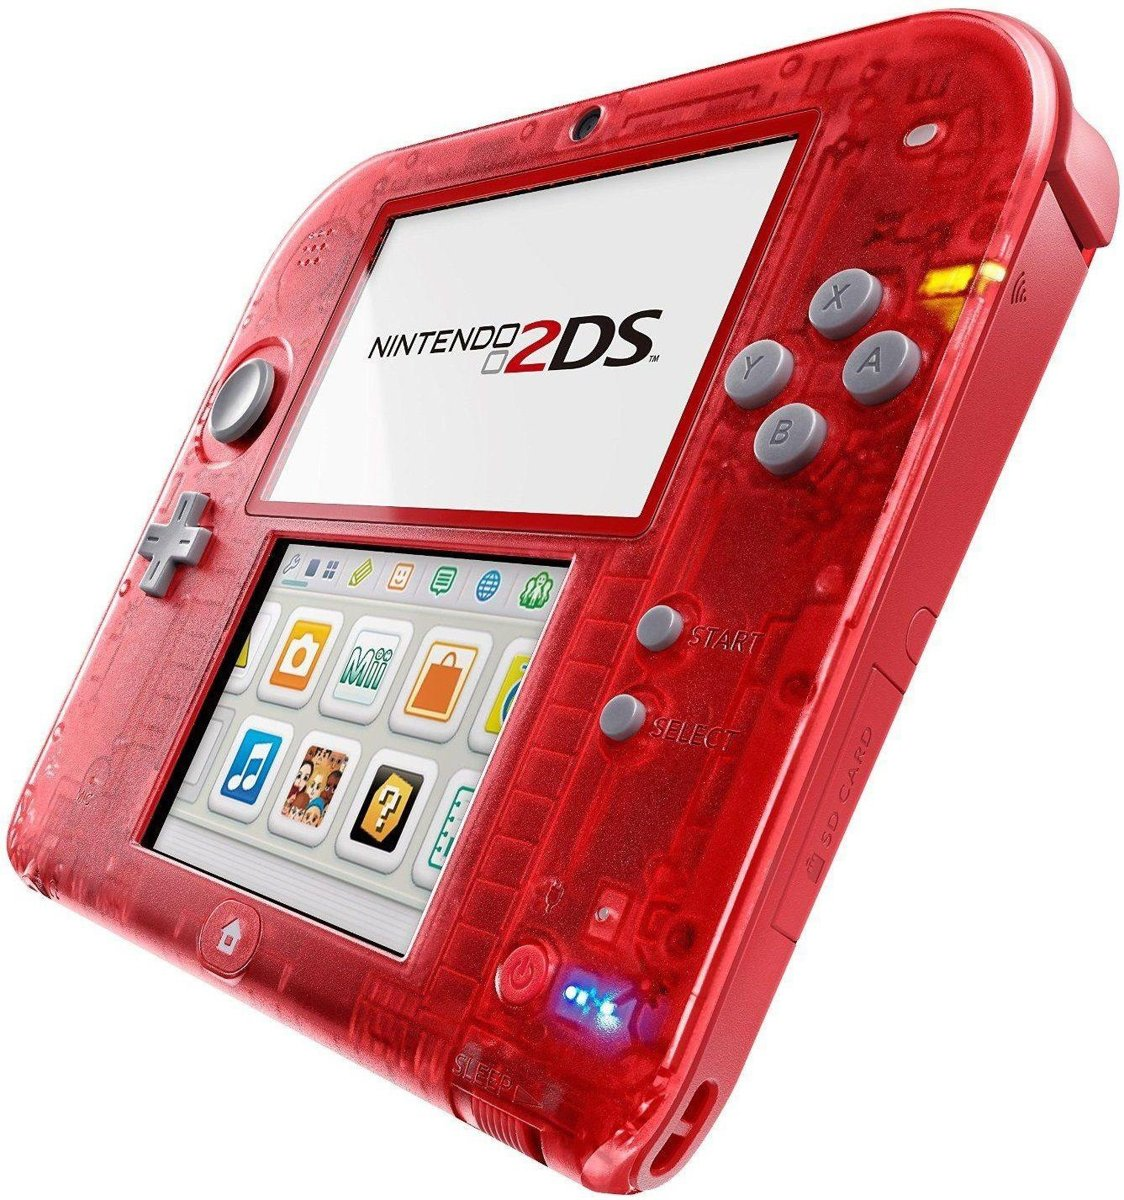 2DS Handheld Console - Transparant Rood